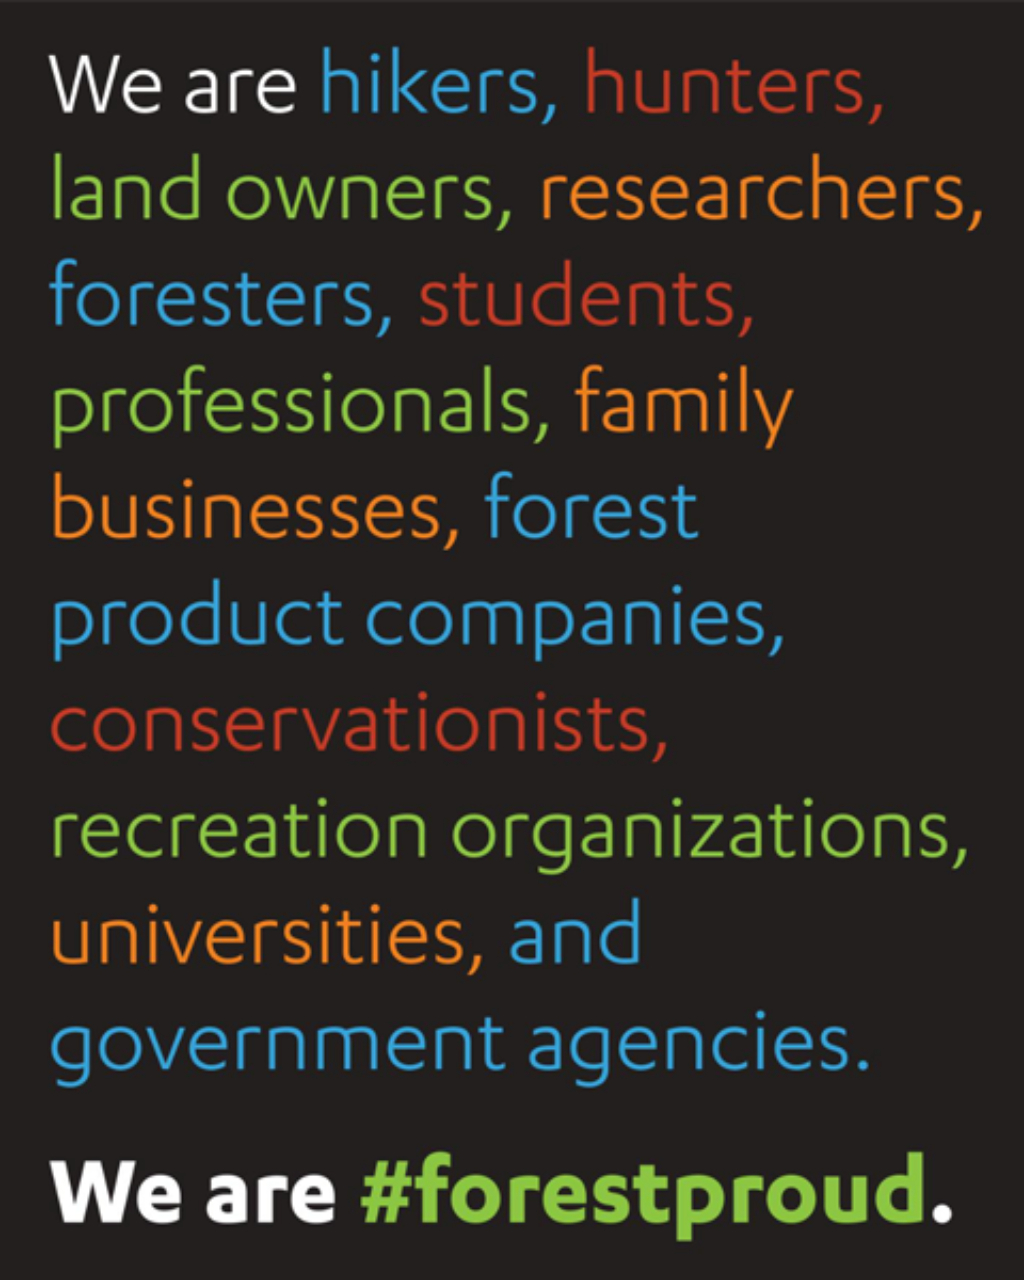 We Are… #forestproud